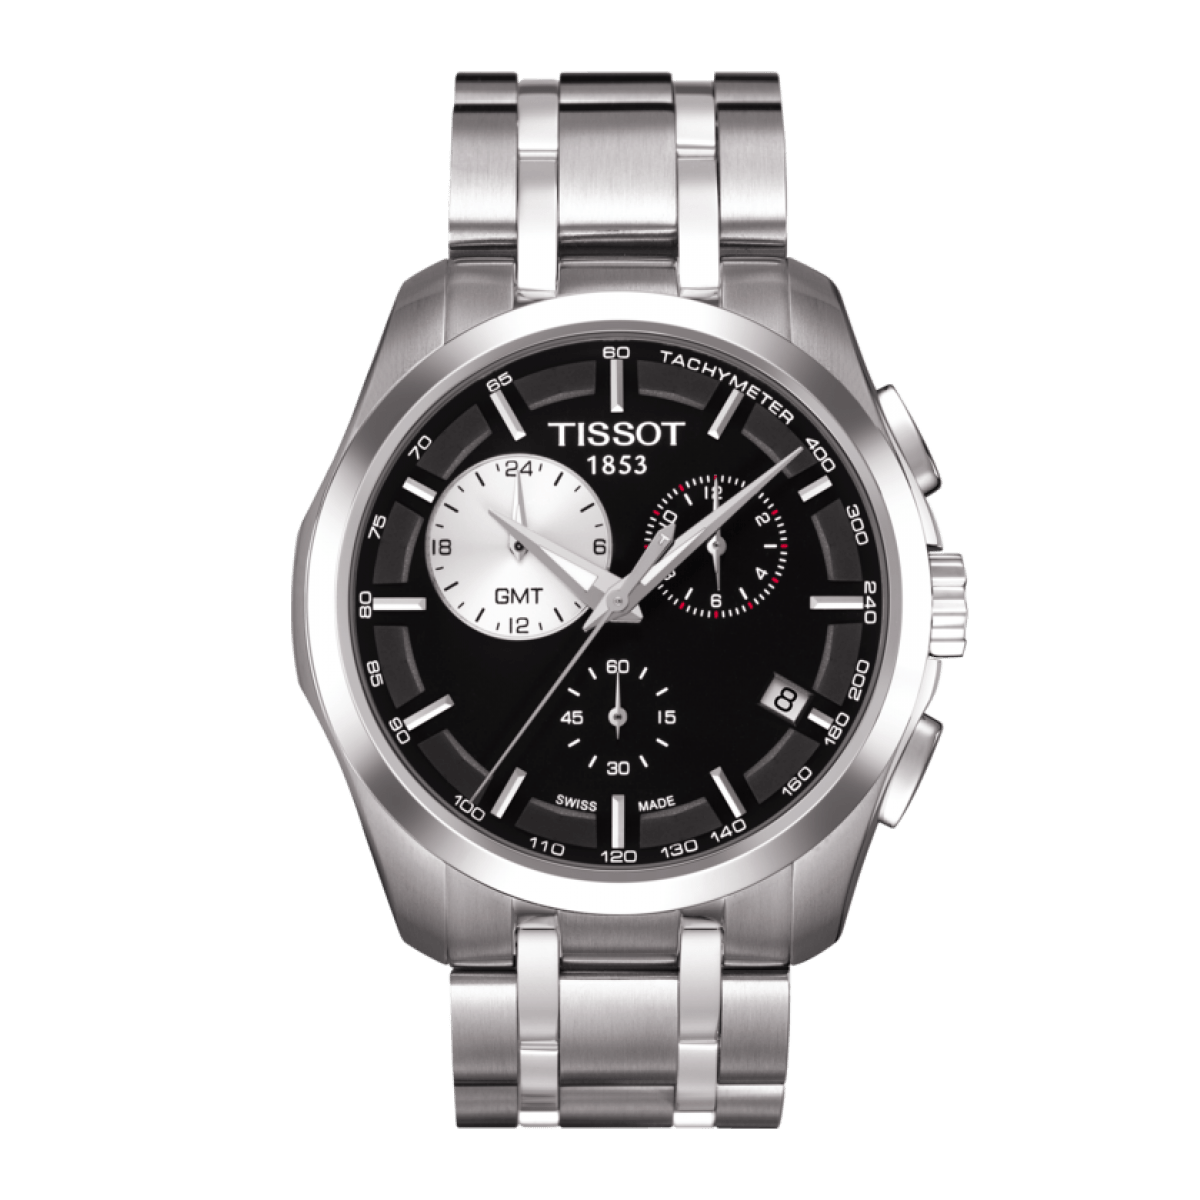 Tissot Couturier GMT Chronograph Watch